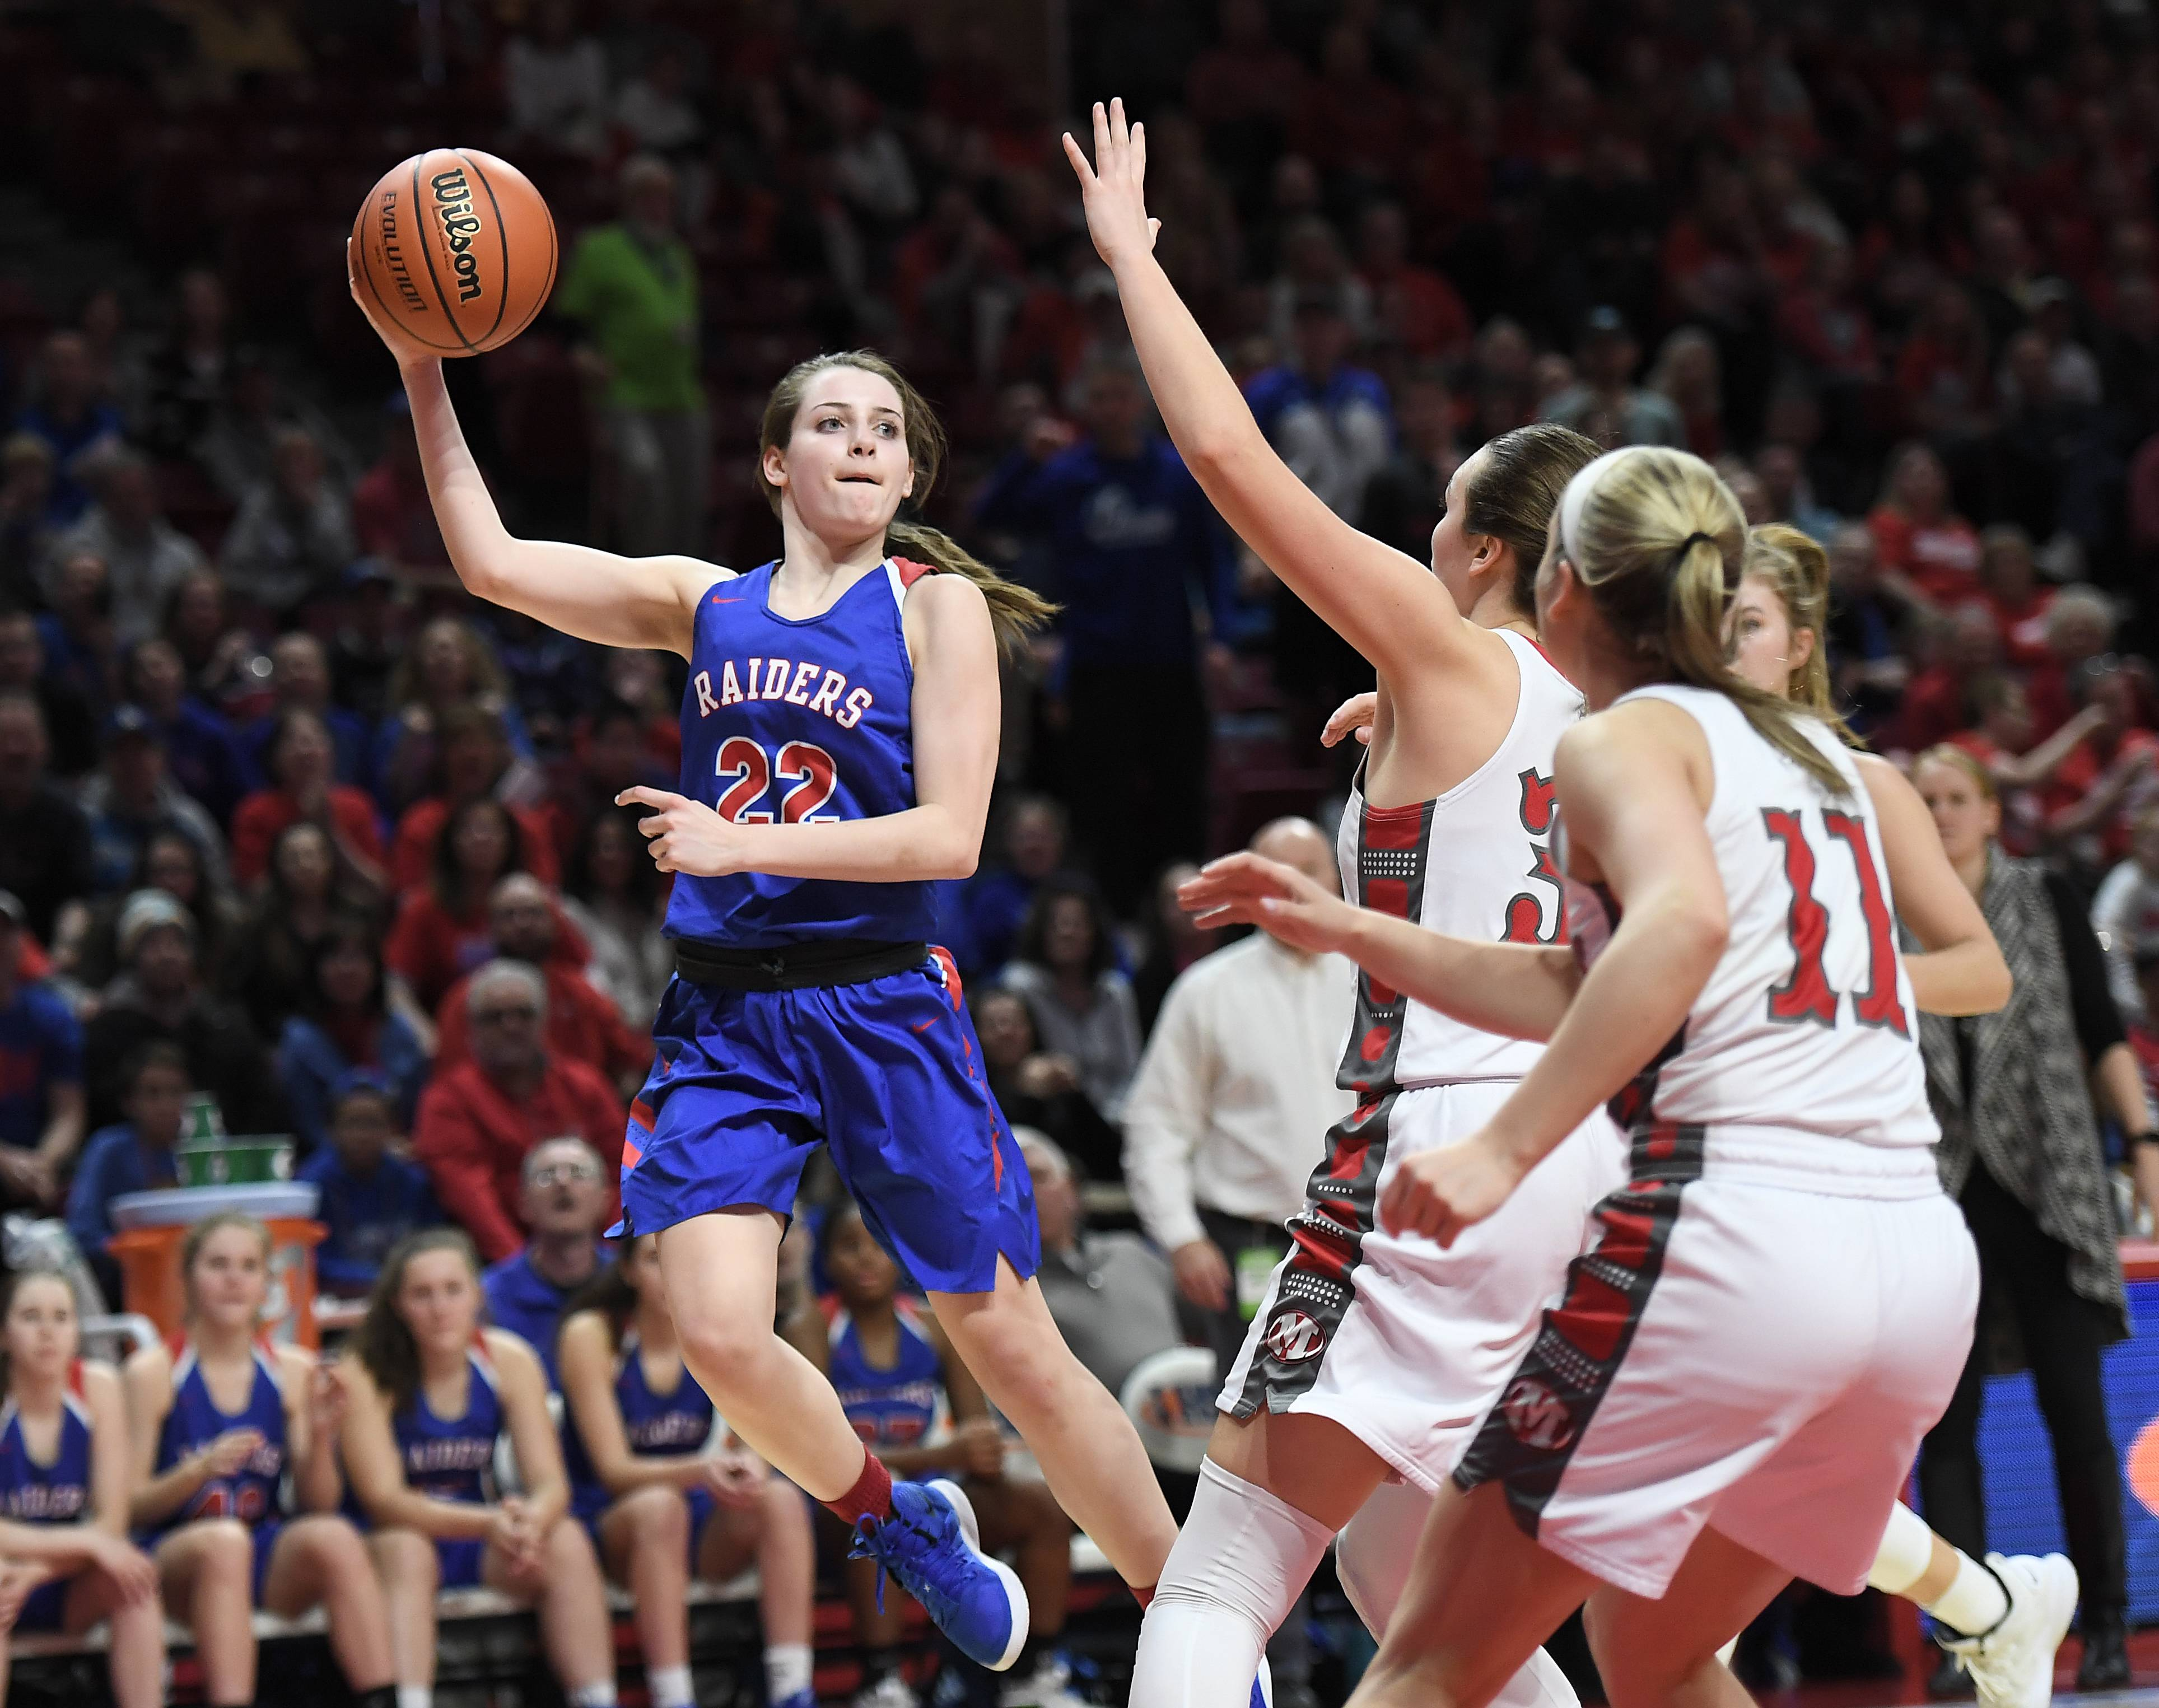 Glenbard South's Raquel LaPonte goes airborne to pass under pressure to a teammate in the IHSA girls state basketball Class 3A finals in Normal on Friday. Glenbard South ended up losing to Morton 35-21.